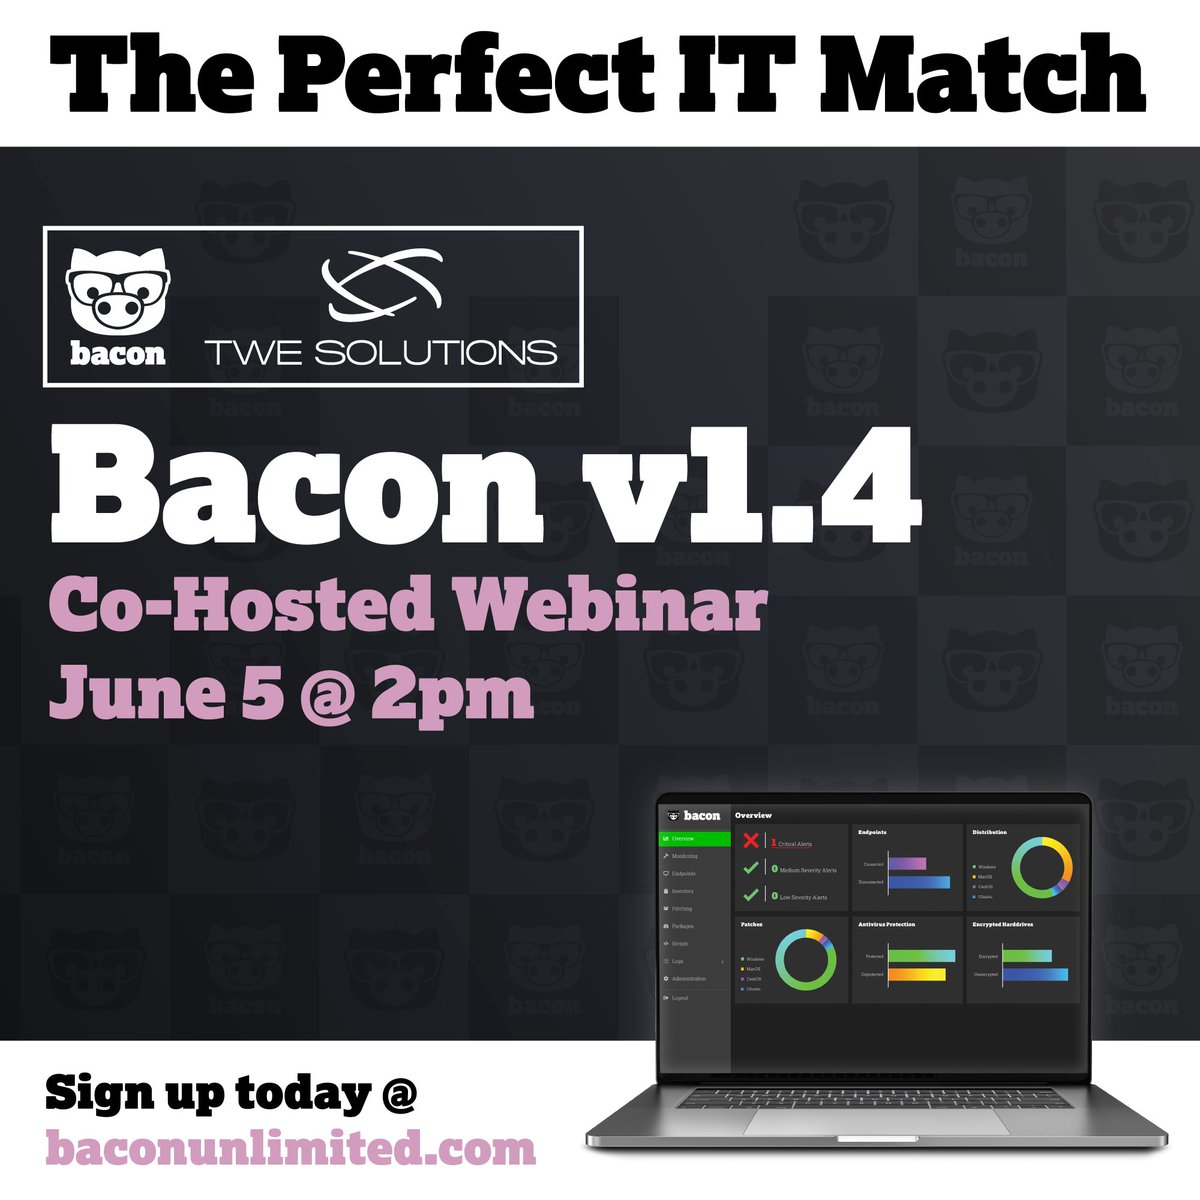 Registration is ending soon for our upcoming co-hosted #webinar with #BaconUnlimited! June 5 at 2pm PDT. Register at https://baconunlimited.com/   #getbacon #itsupport #itsecurity #itconsulting #techsupport #tech #technology #crossplatform #windows #mac #linux #itsoftware #softwarepic.twitter.com/g941zLKnIK